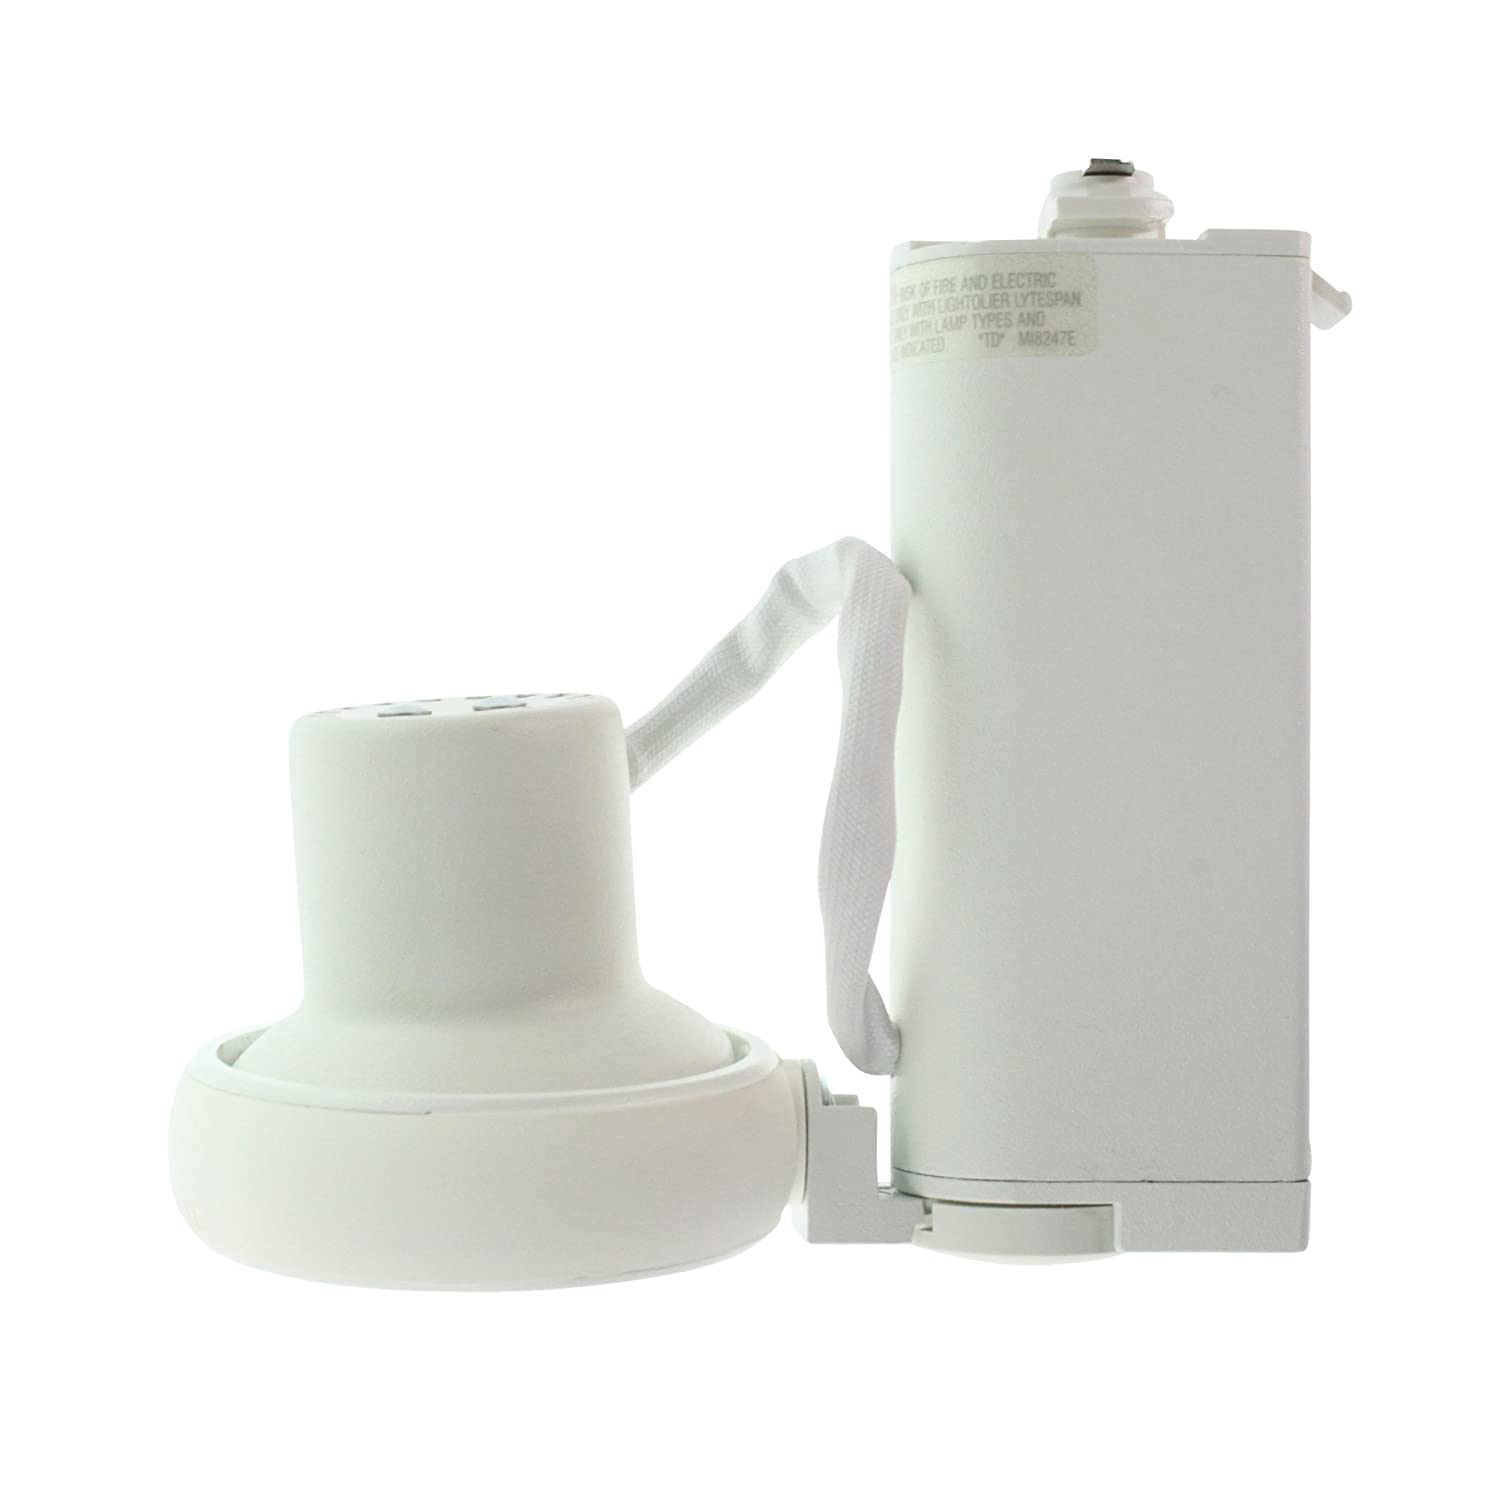 Lightolier 6273bwh lytespan track lighting sof tech low voltage lightolier 6273bwh lytespan track lighting sof tech low voltage enclosed spot white amazon mozeypictures Image collections